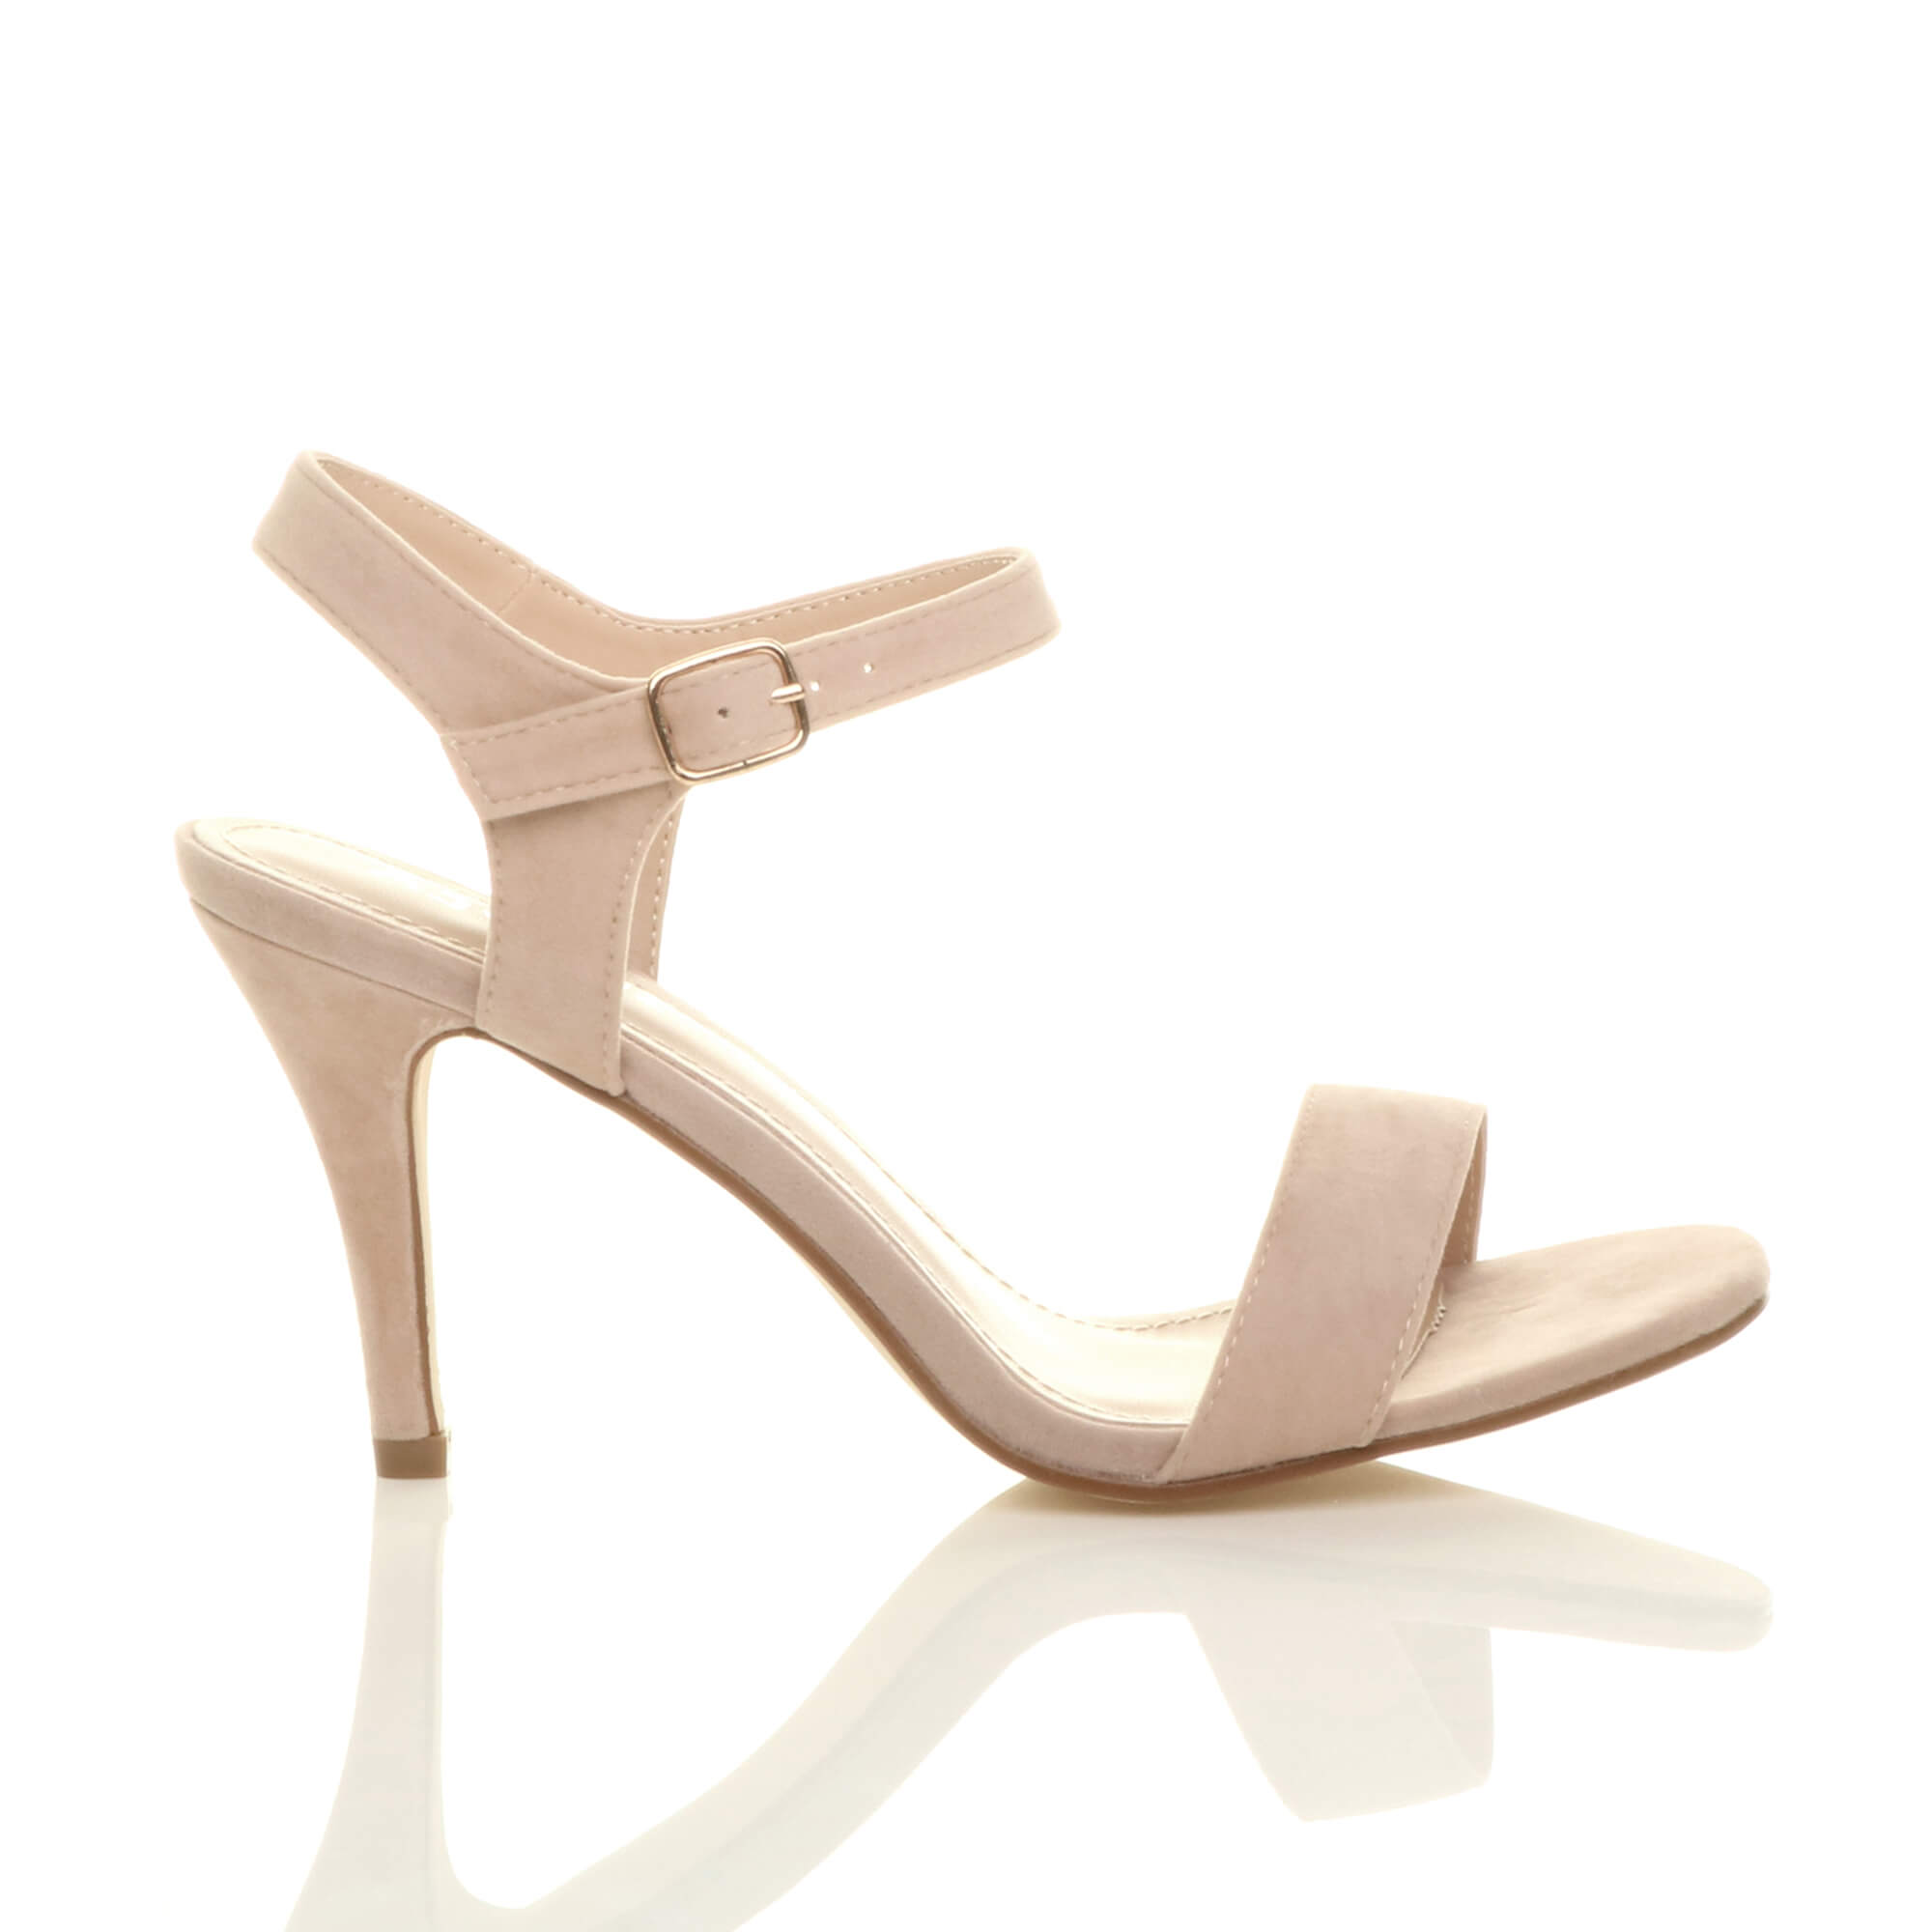 WOMENS-LADIES-HIGH-HEEL-BUCKLE-STRAPPY-BASIC-BARELY-THERE-SANDALS-SHOES-SIZE thumbnail 101